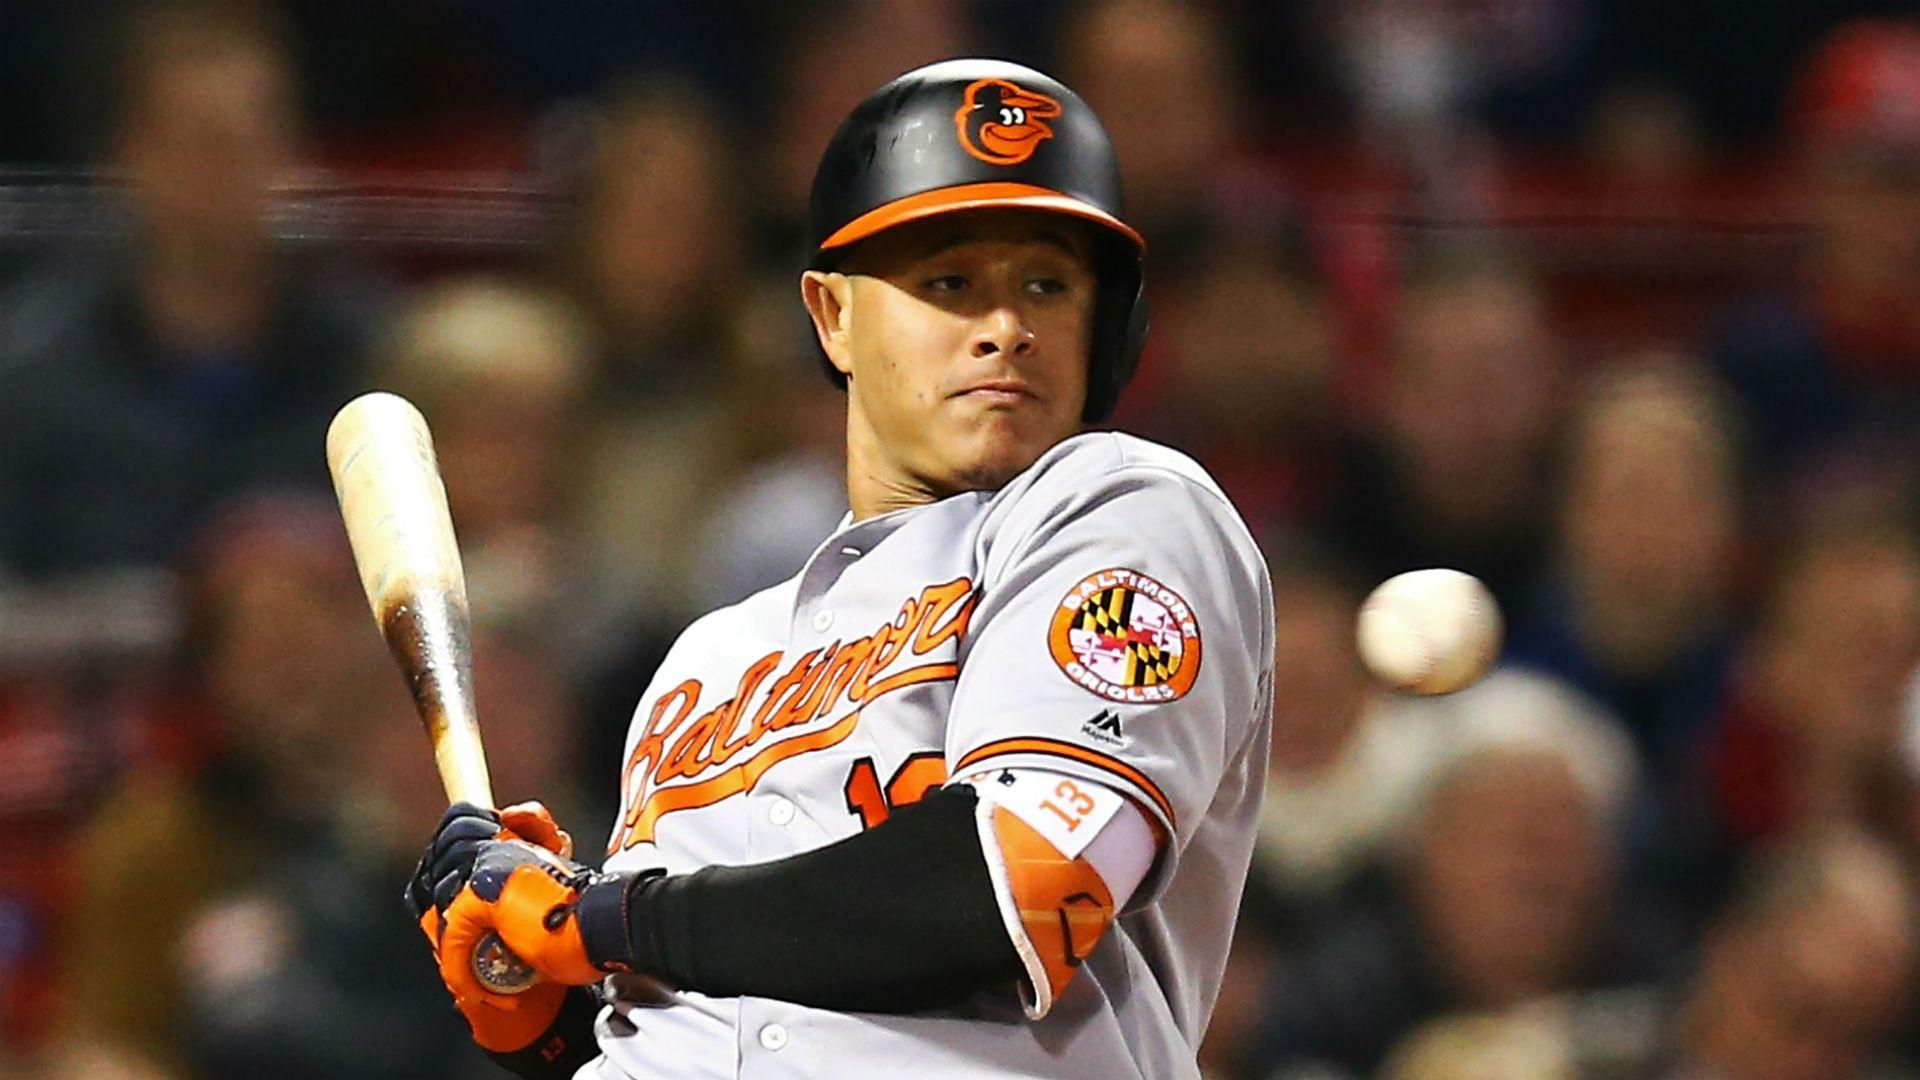 Baltimore Orioles general manager Dan Duquette is looking to trade AllStar shortstop Manny Machado before the July 31 2018 73118 nonwaiver deadline